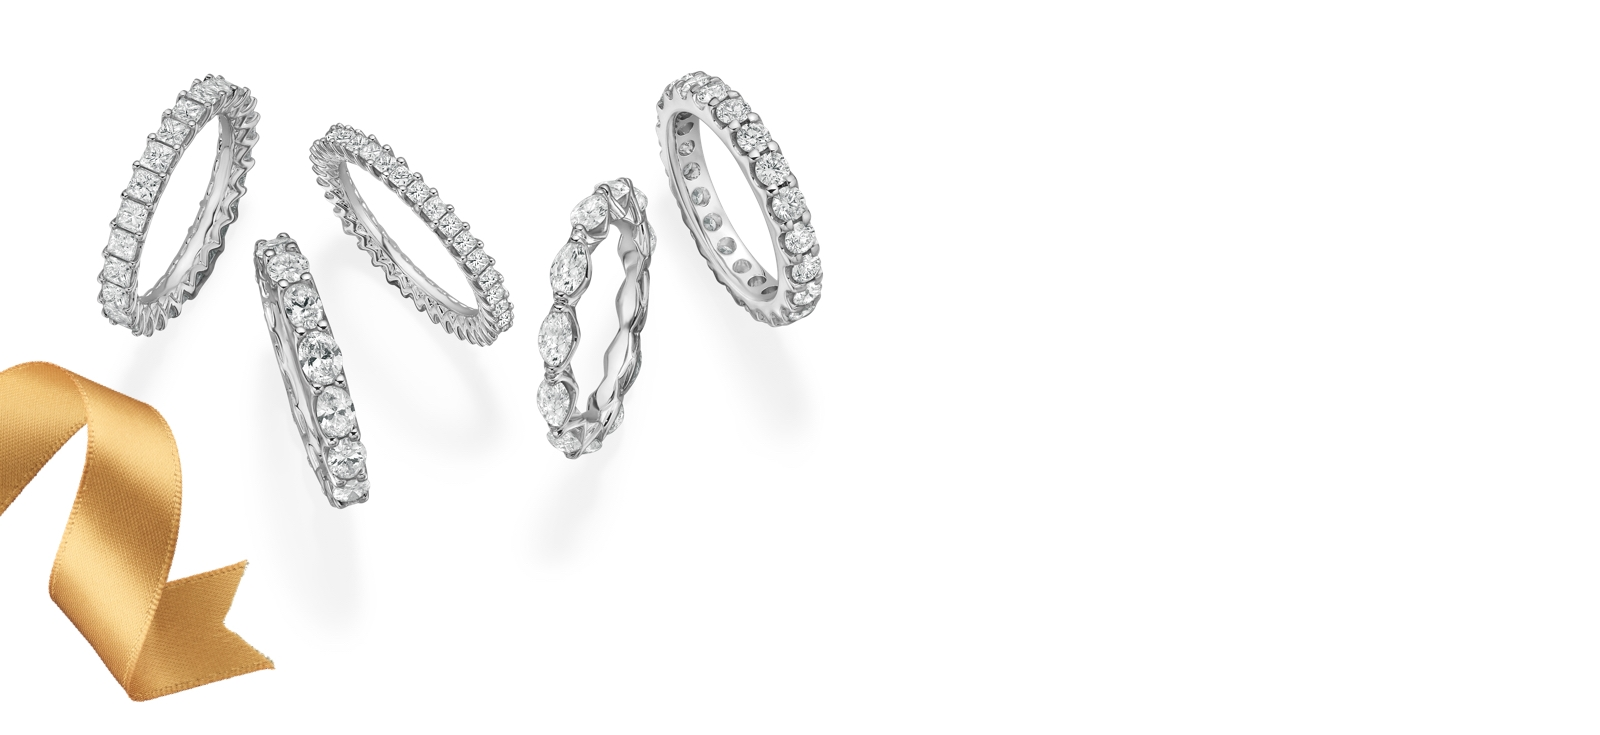 Five diamond eternity bands with princess, round, marquise, emerald and cushion cut diamonds set in white gold on a white background and a gold ribbon.